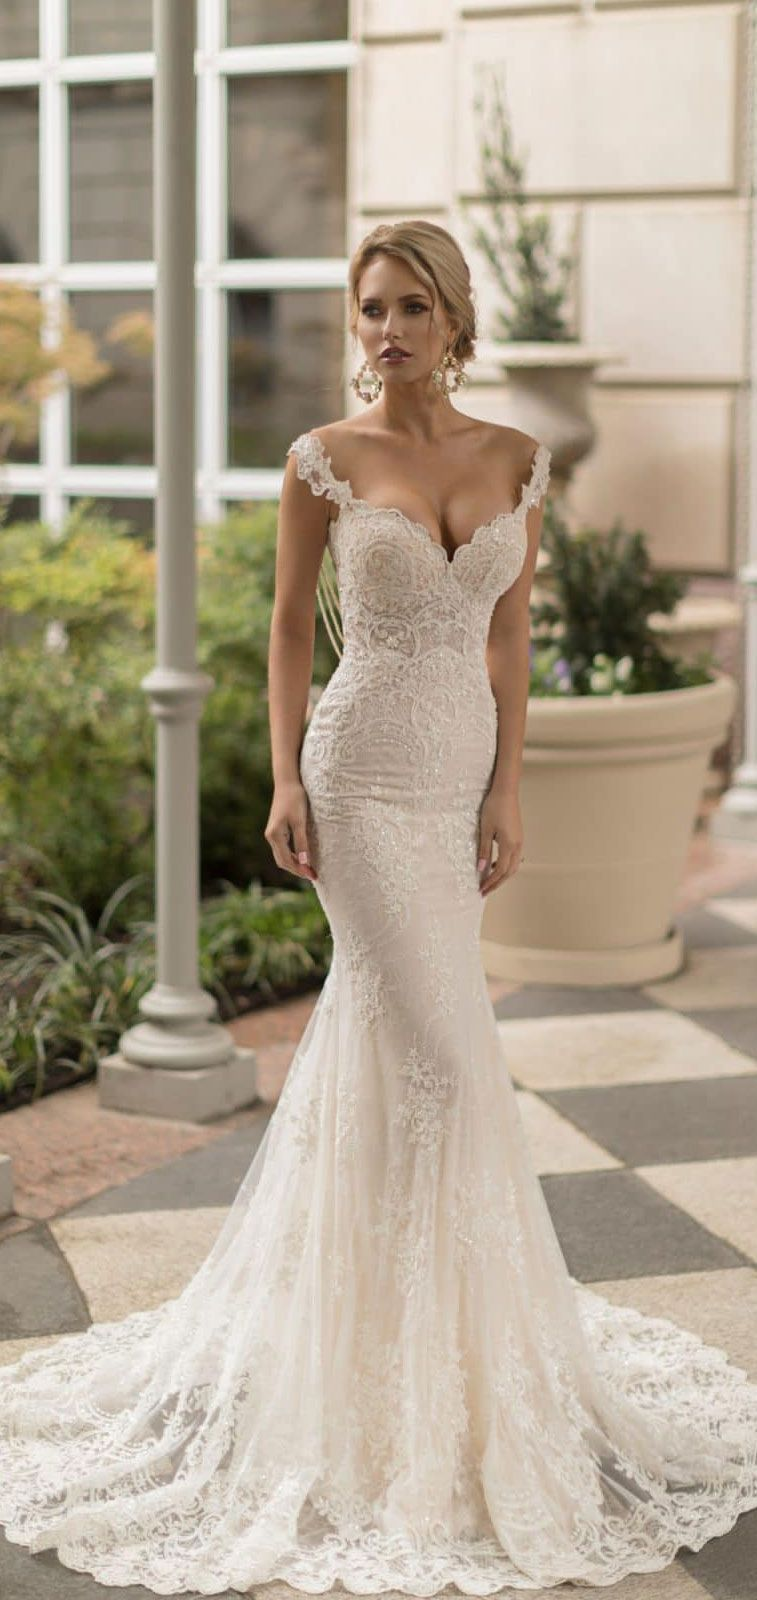 The Best Mermaid Wedding Dress - Best recipes, Fashion on trends ...